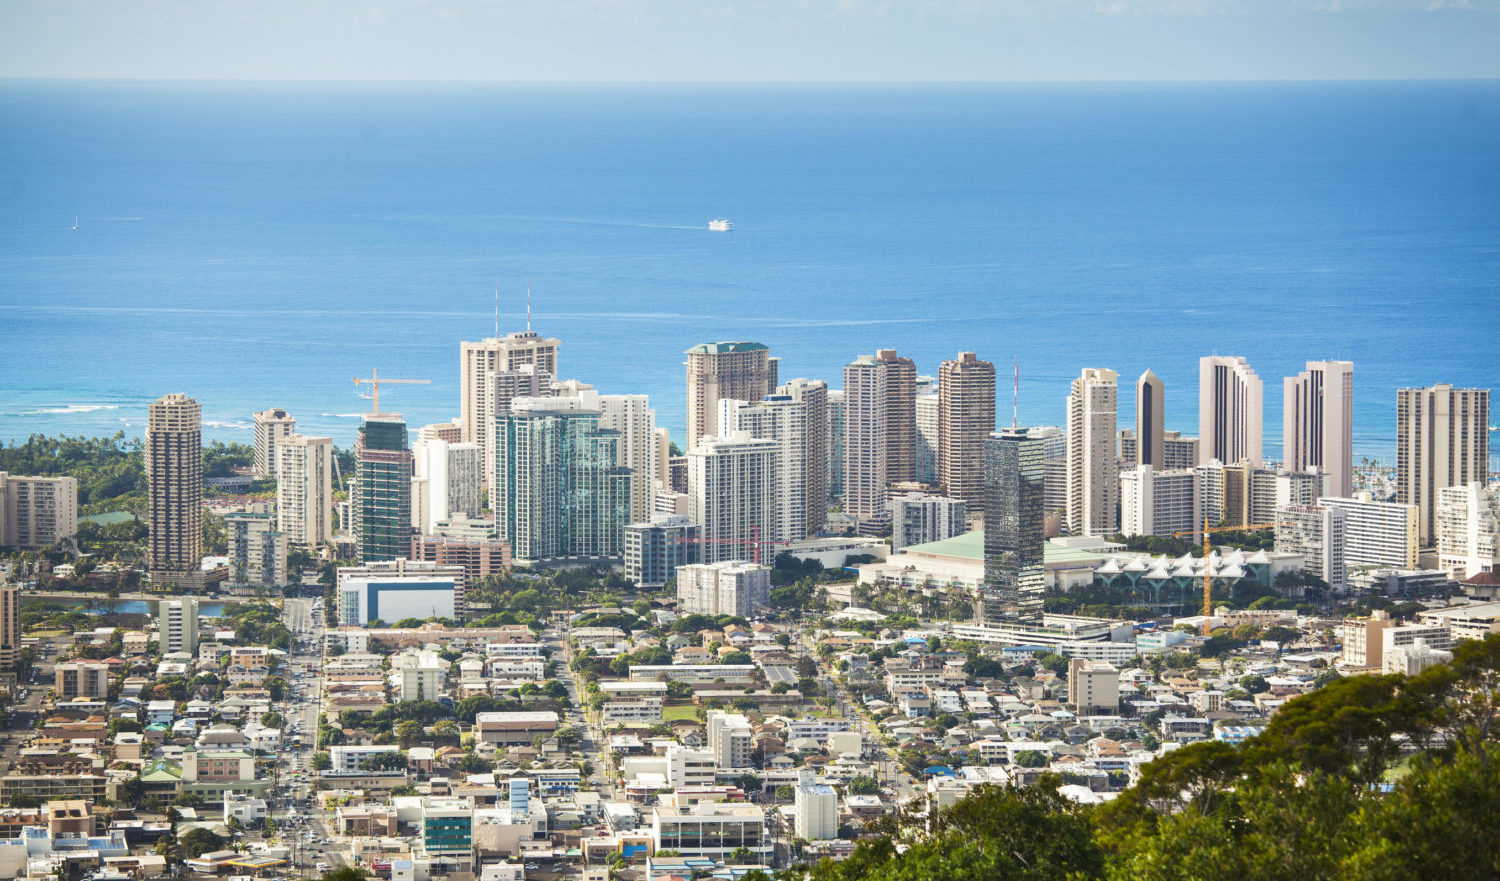 Honolulu, the capitol city of the state of Hawaii USA. The business district and downtown area skyline with the Pacific Ocean in background.